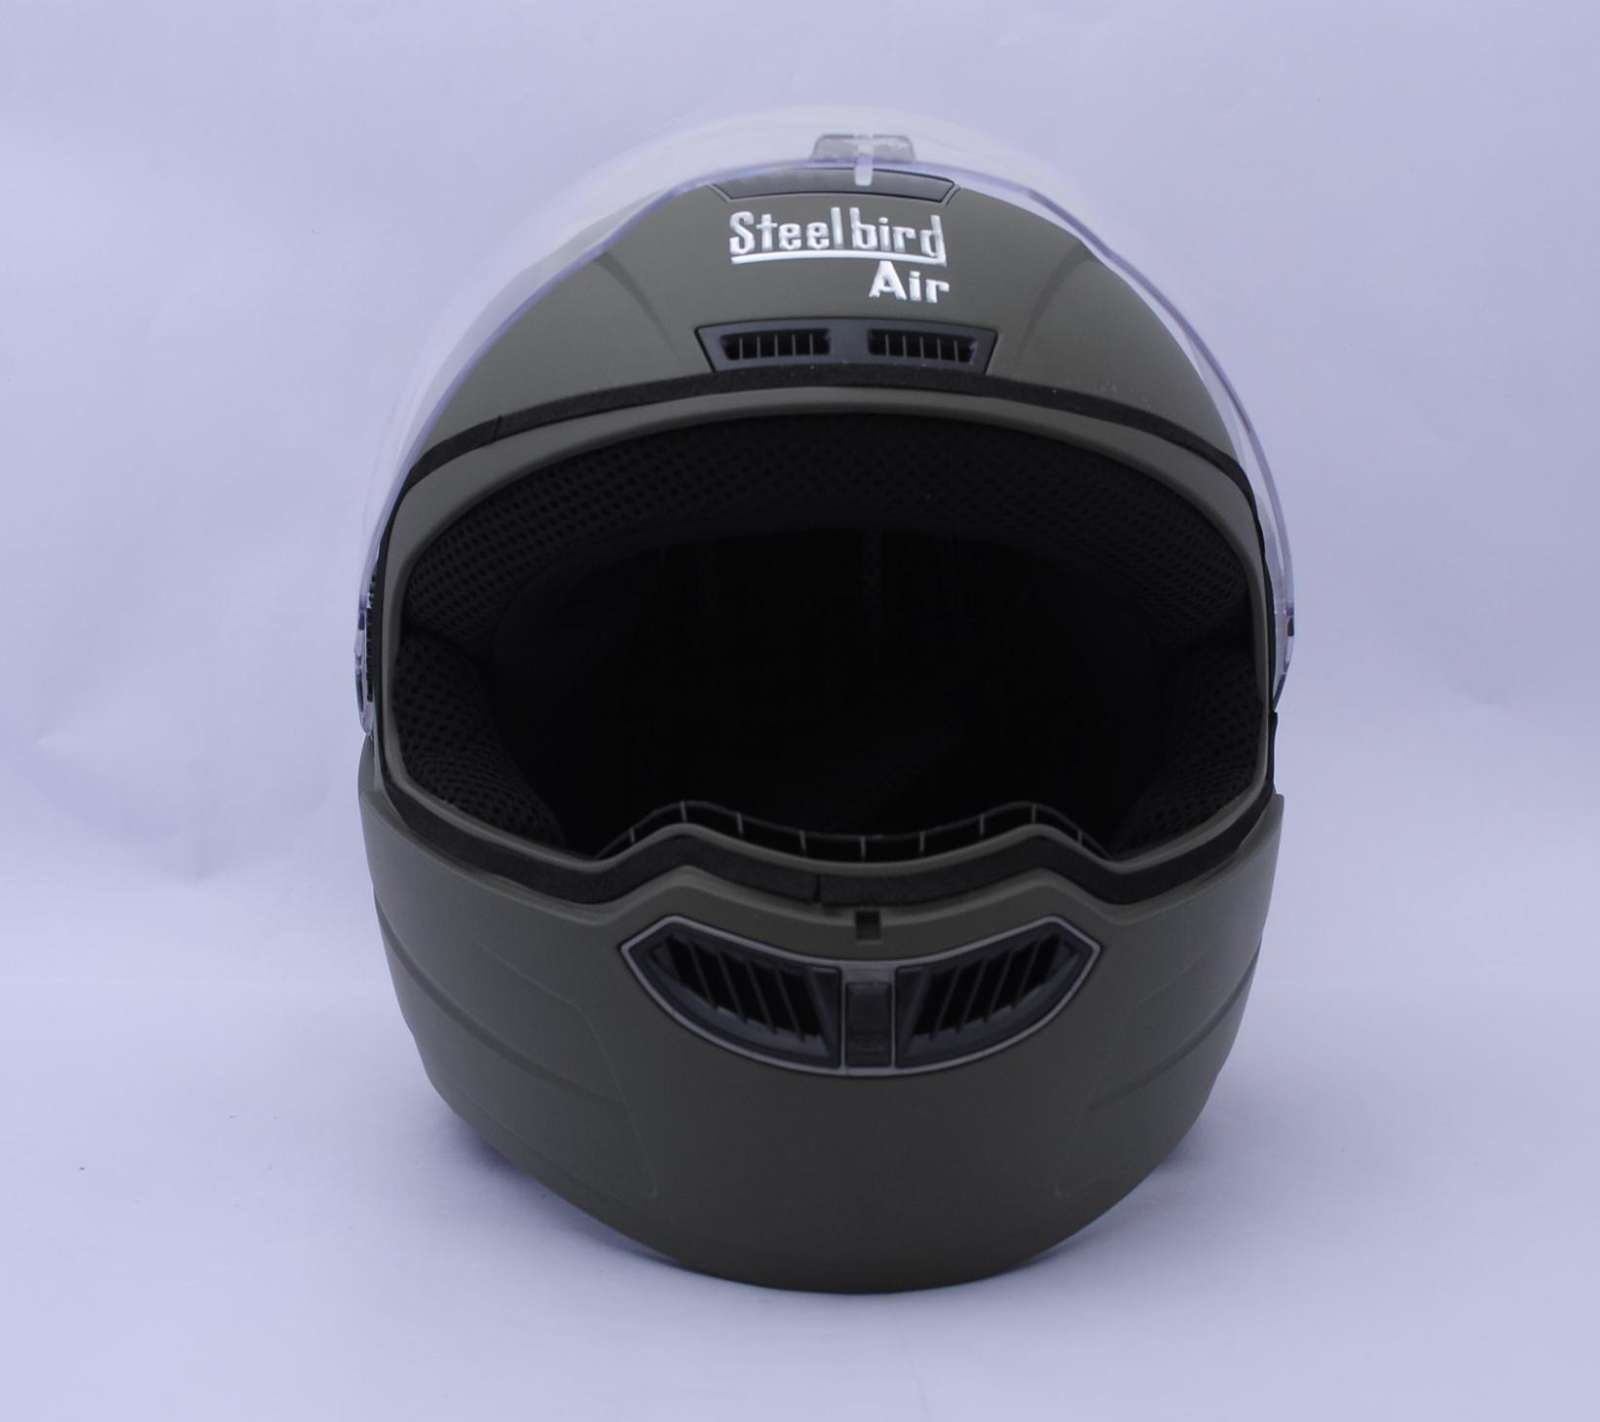 Steelbird Air Helmet With Ventilation System Launched At